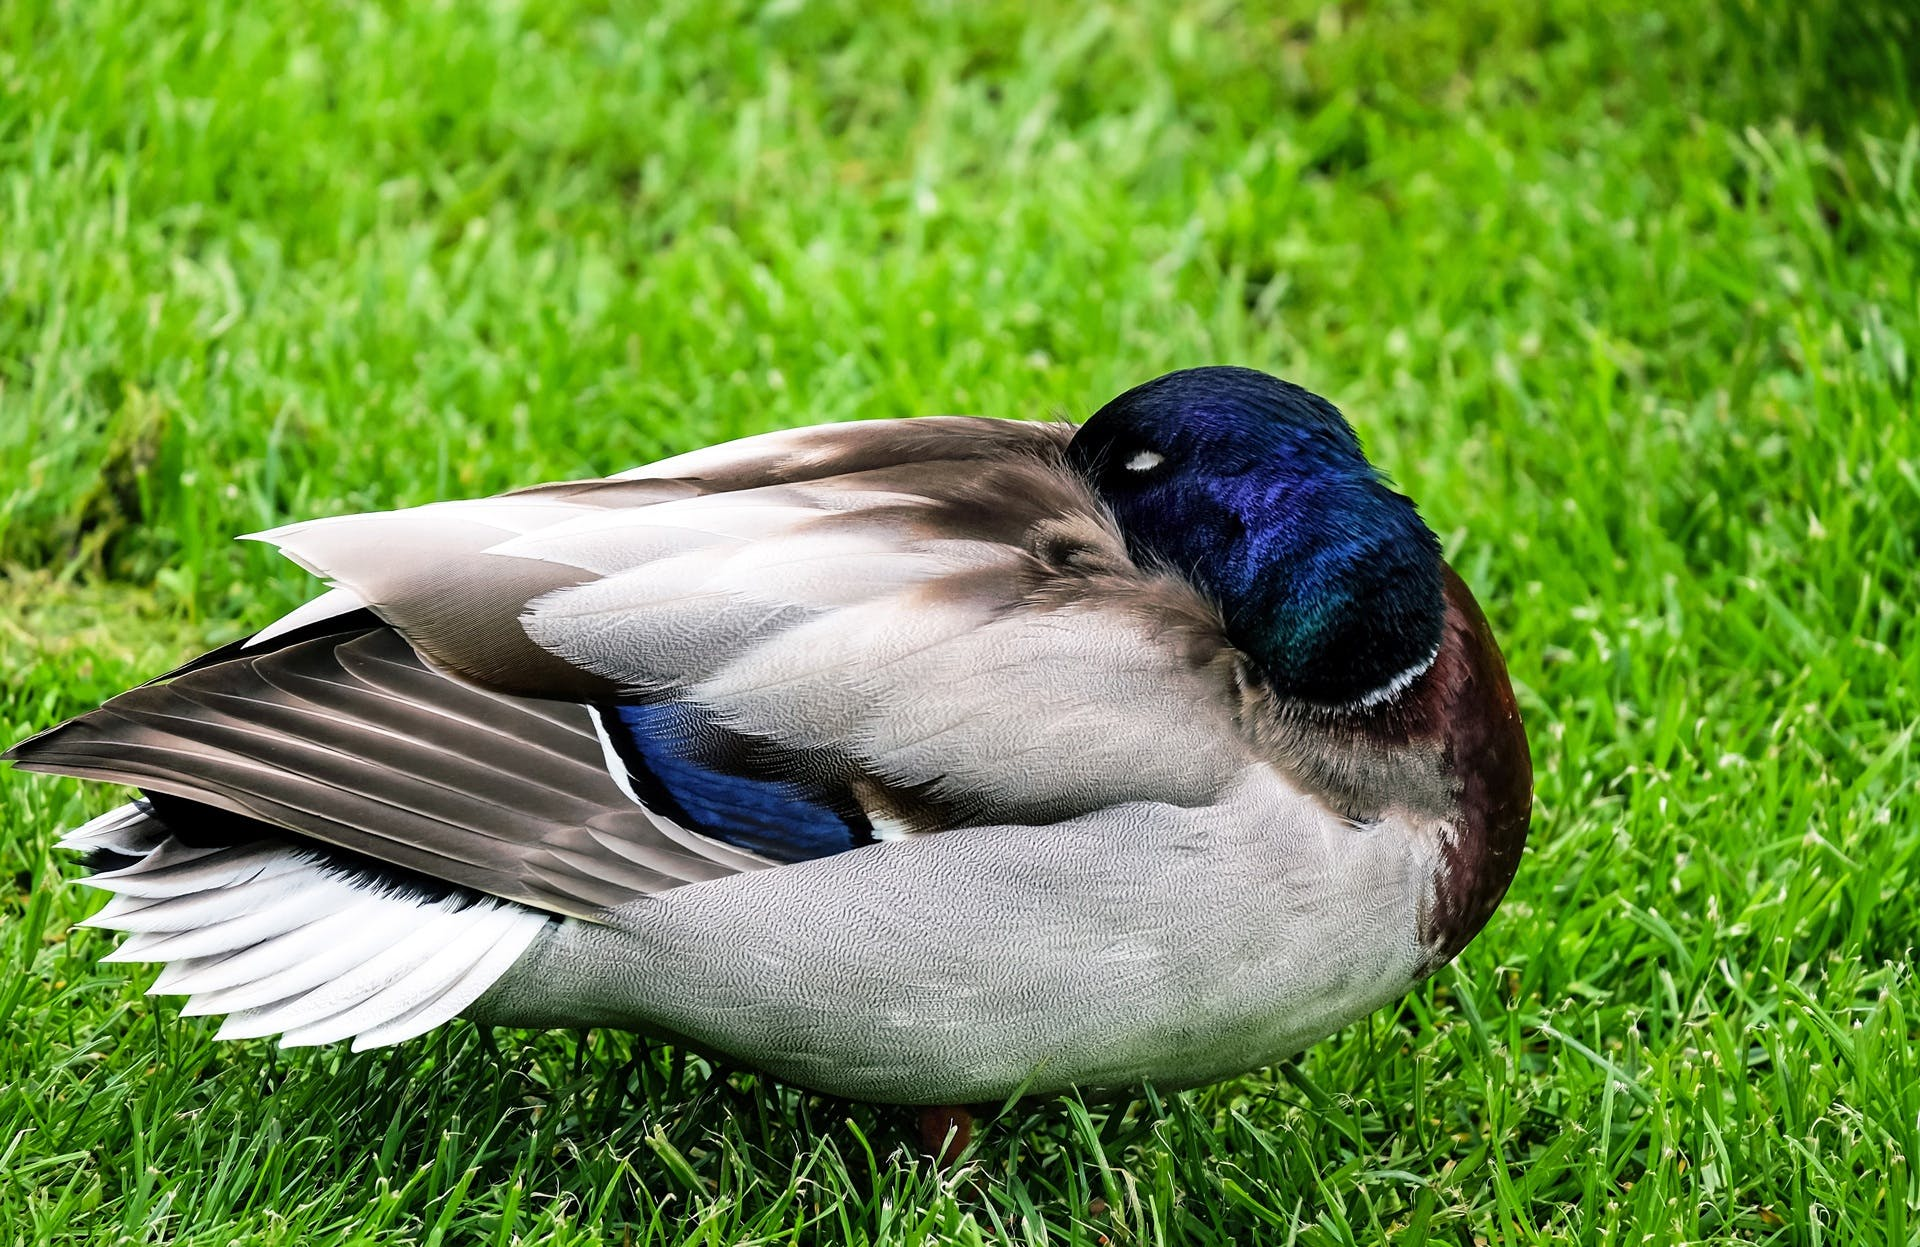 White and Blue Pigeon on Grass Field